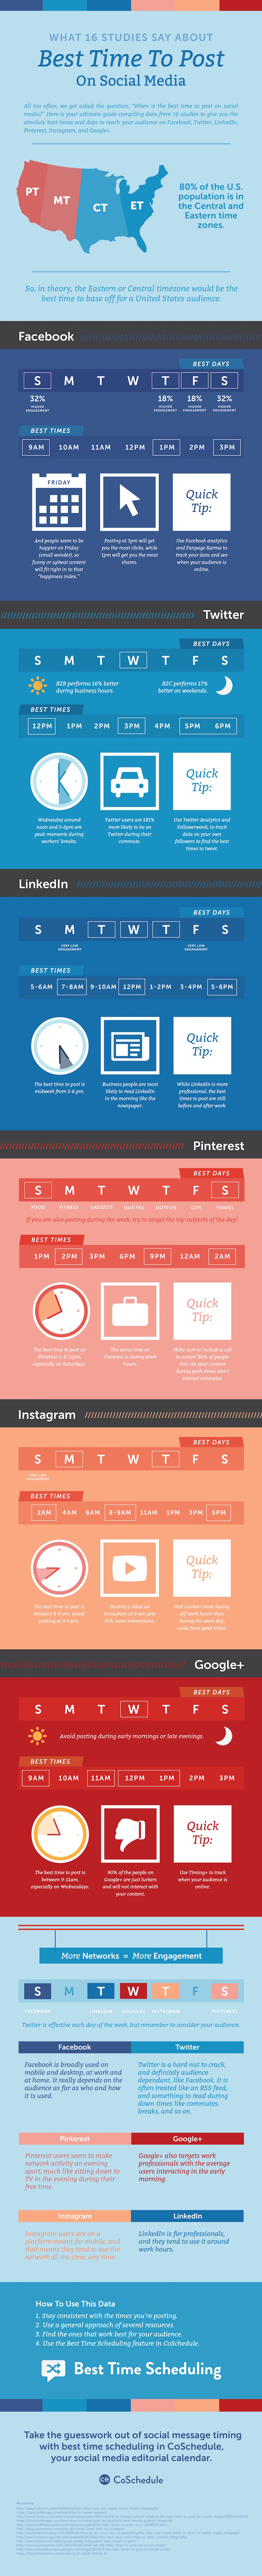 Infographic: What Are the Best Days and Times to Post on Social Media?